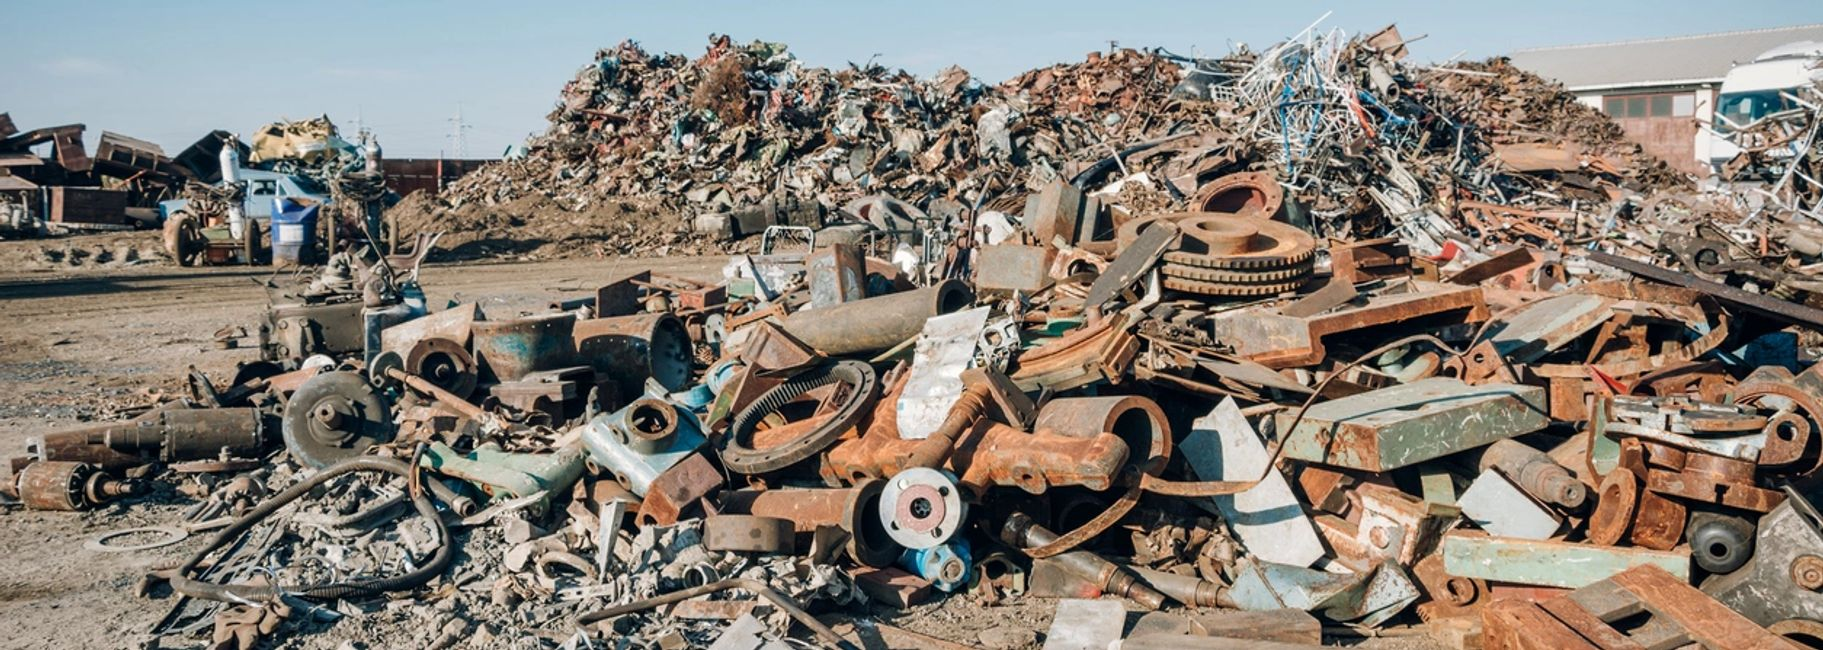 Illegal Dumping Cleanout, Junk Removal, Junk Hauling, Junk Loading, Chandler, Mesa, Ahwatukee, AZ